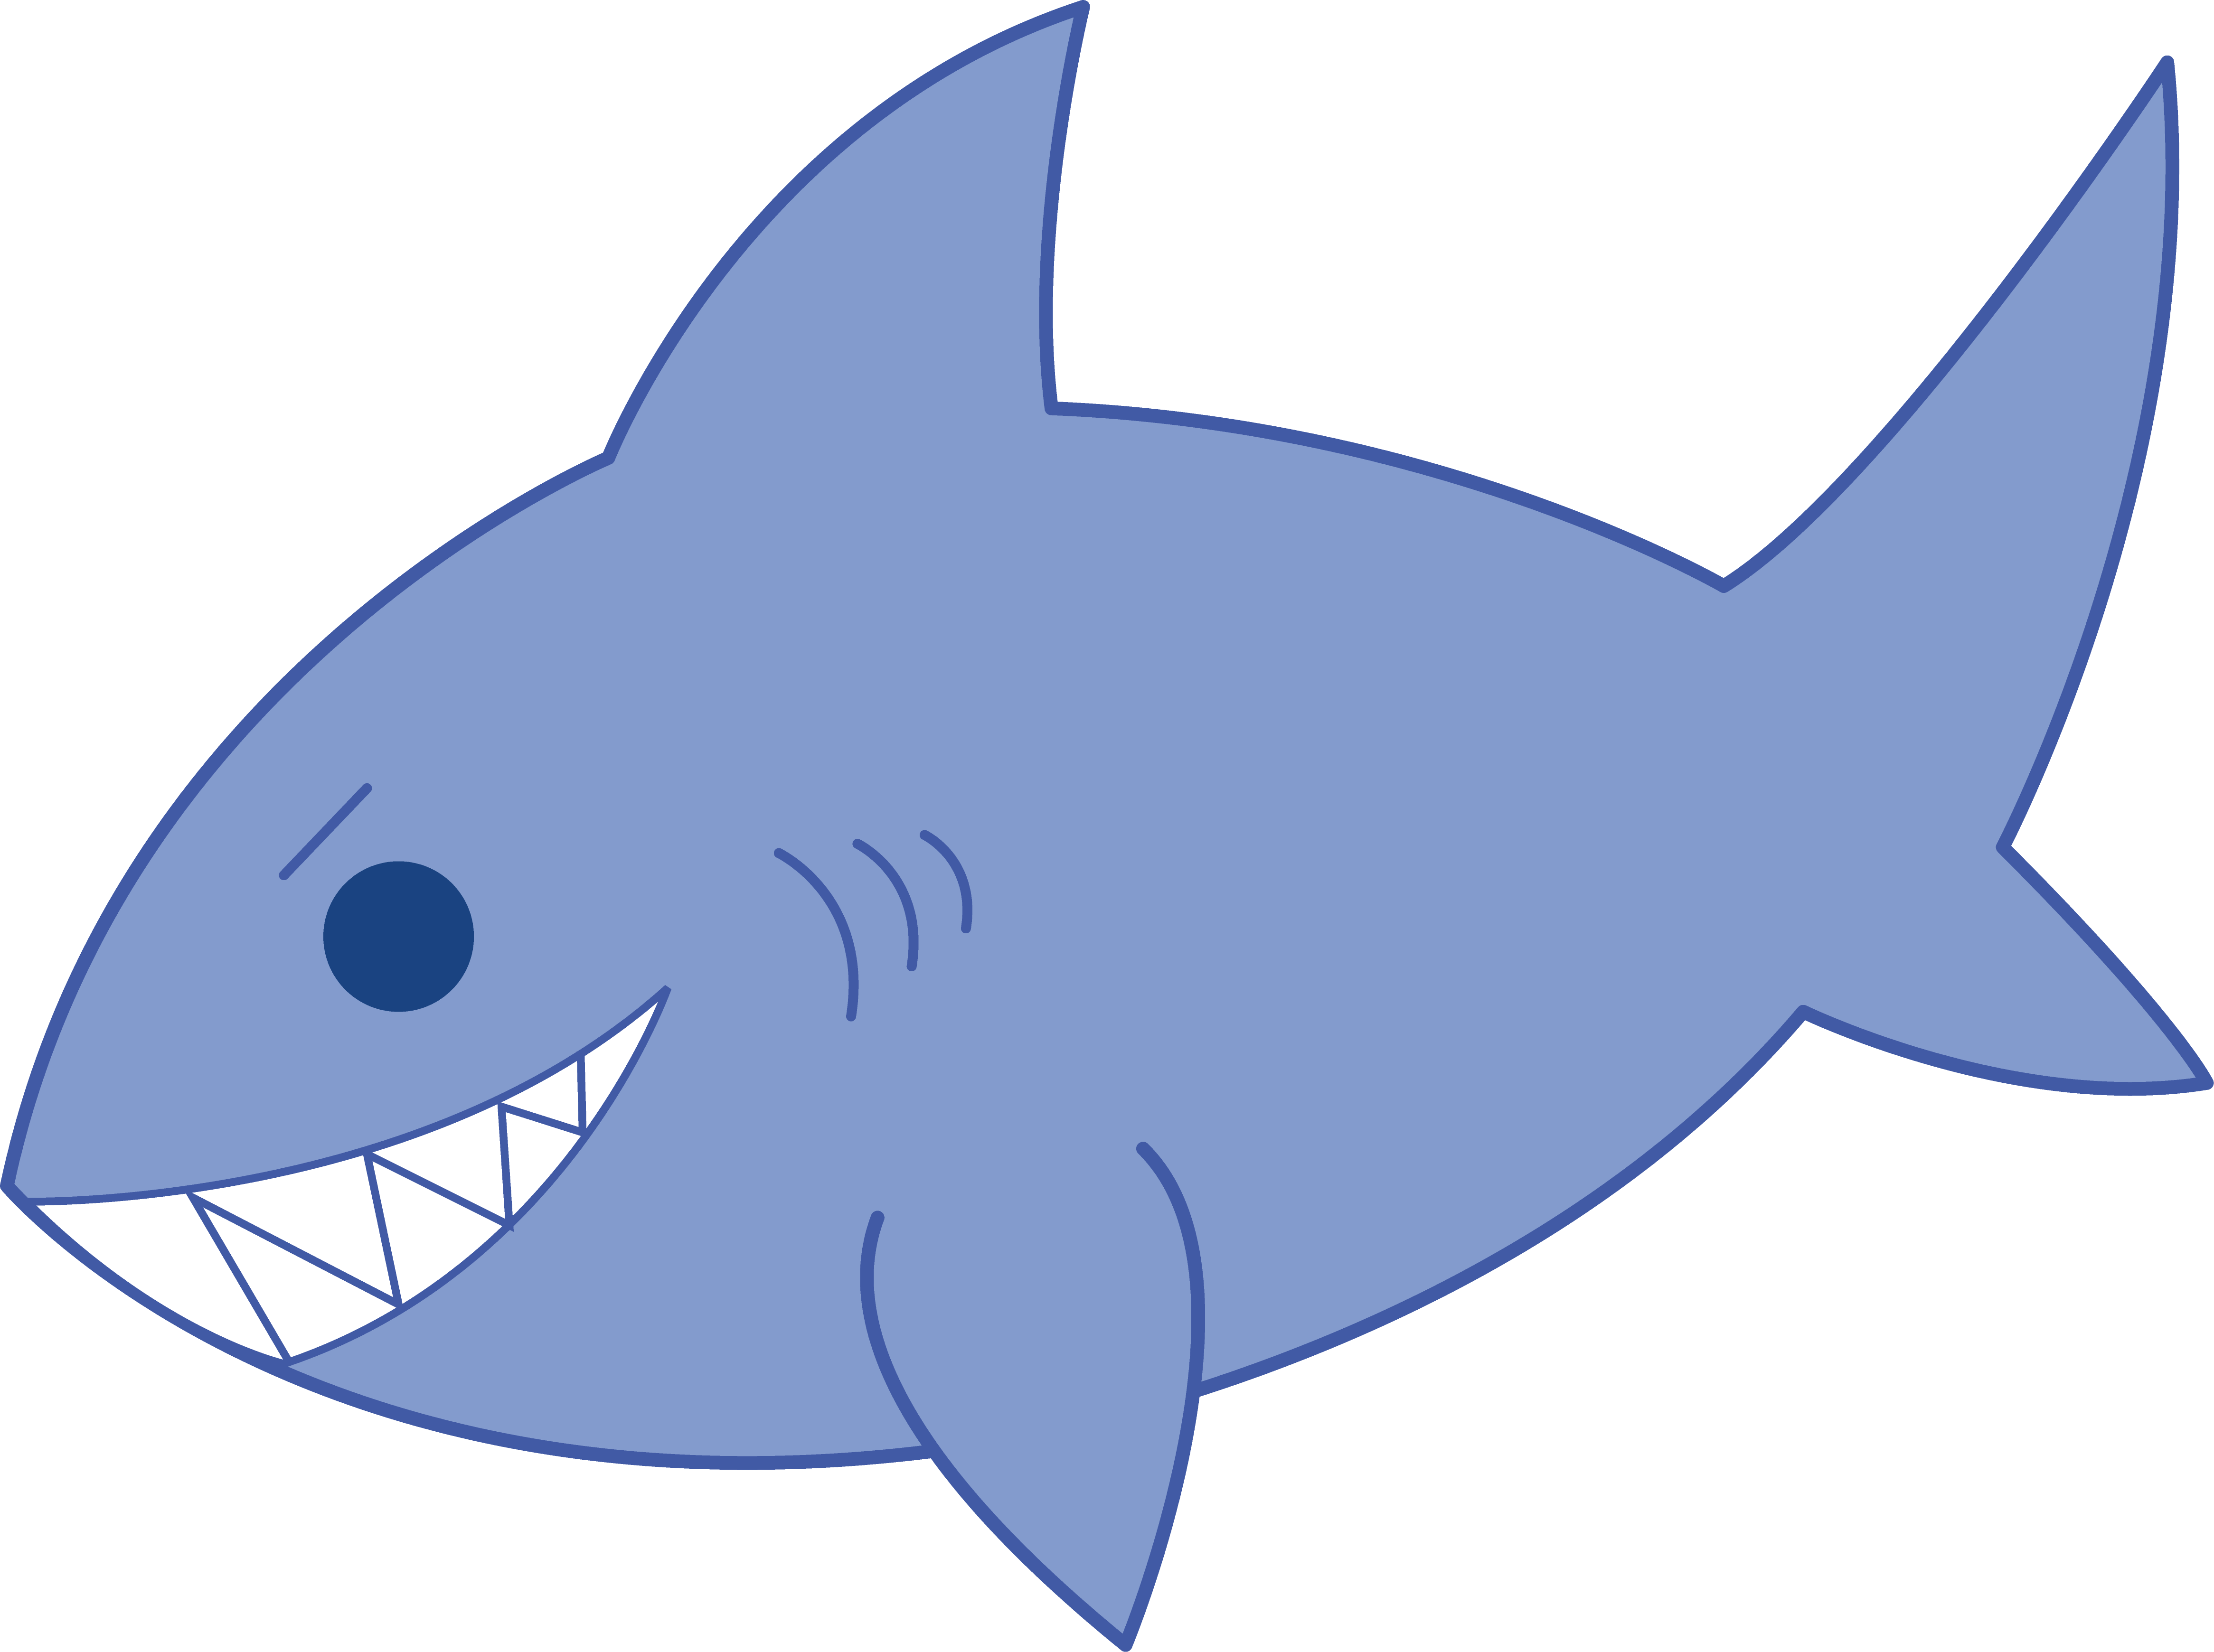 Hawaiian fish clipart image freeuse Shark Tooth Clipart at GetDrawings.com | Free for personal use Shark ... image freeuse